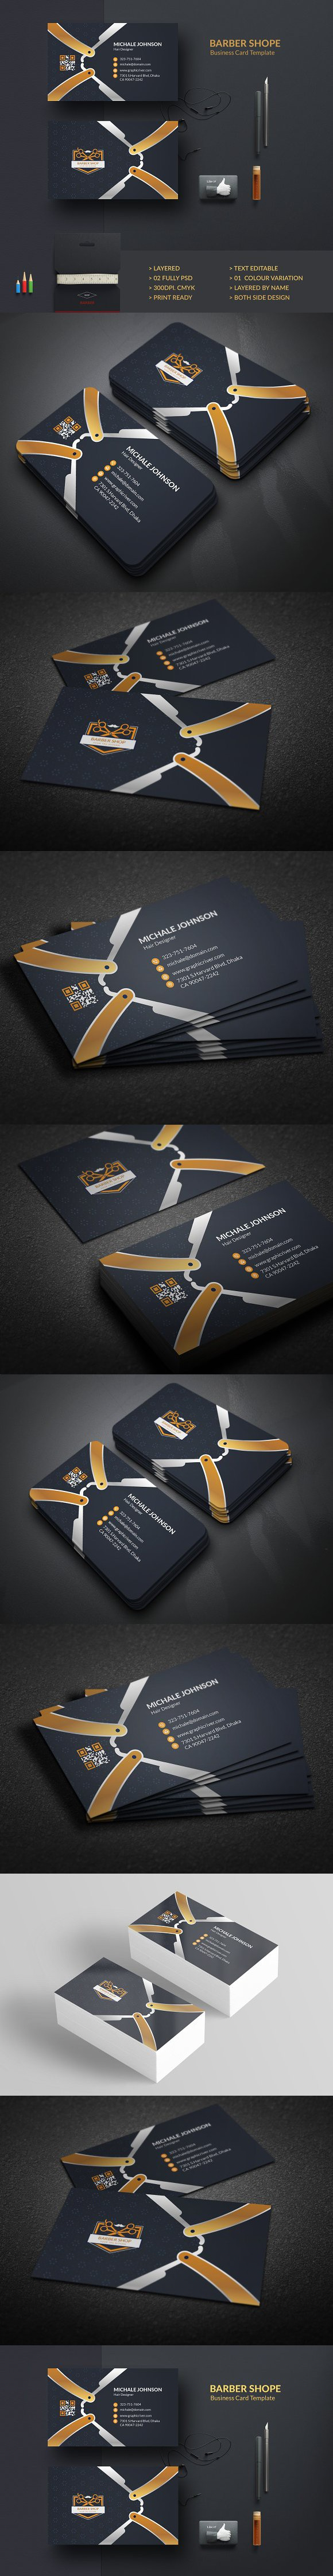 Barber Business Card Business Card Templates